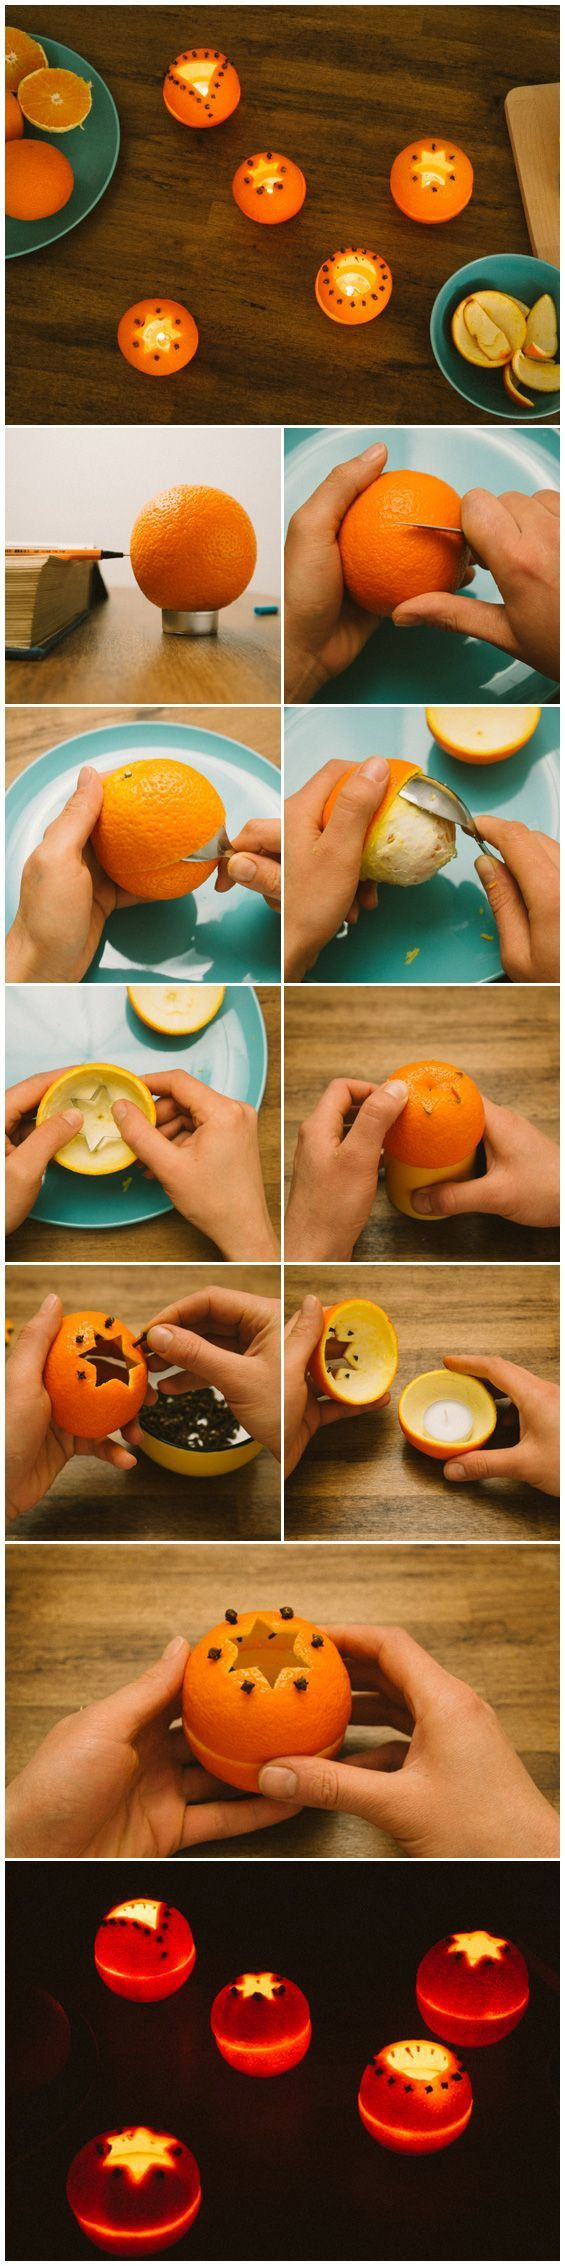 Fun Xmas Lamps - DIY with oranges